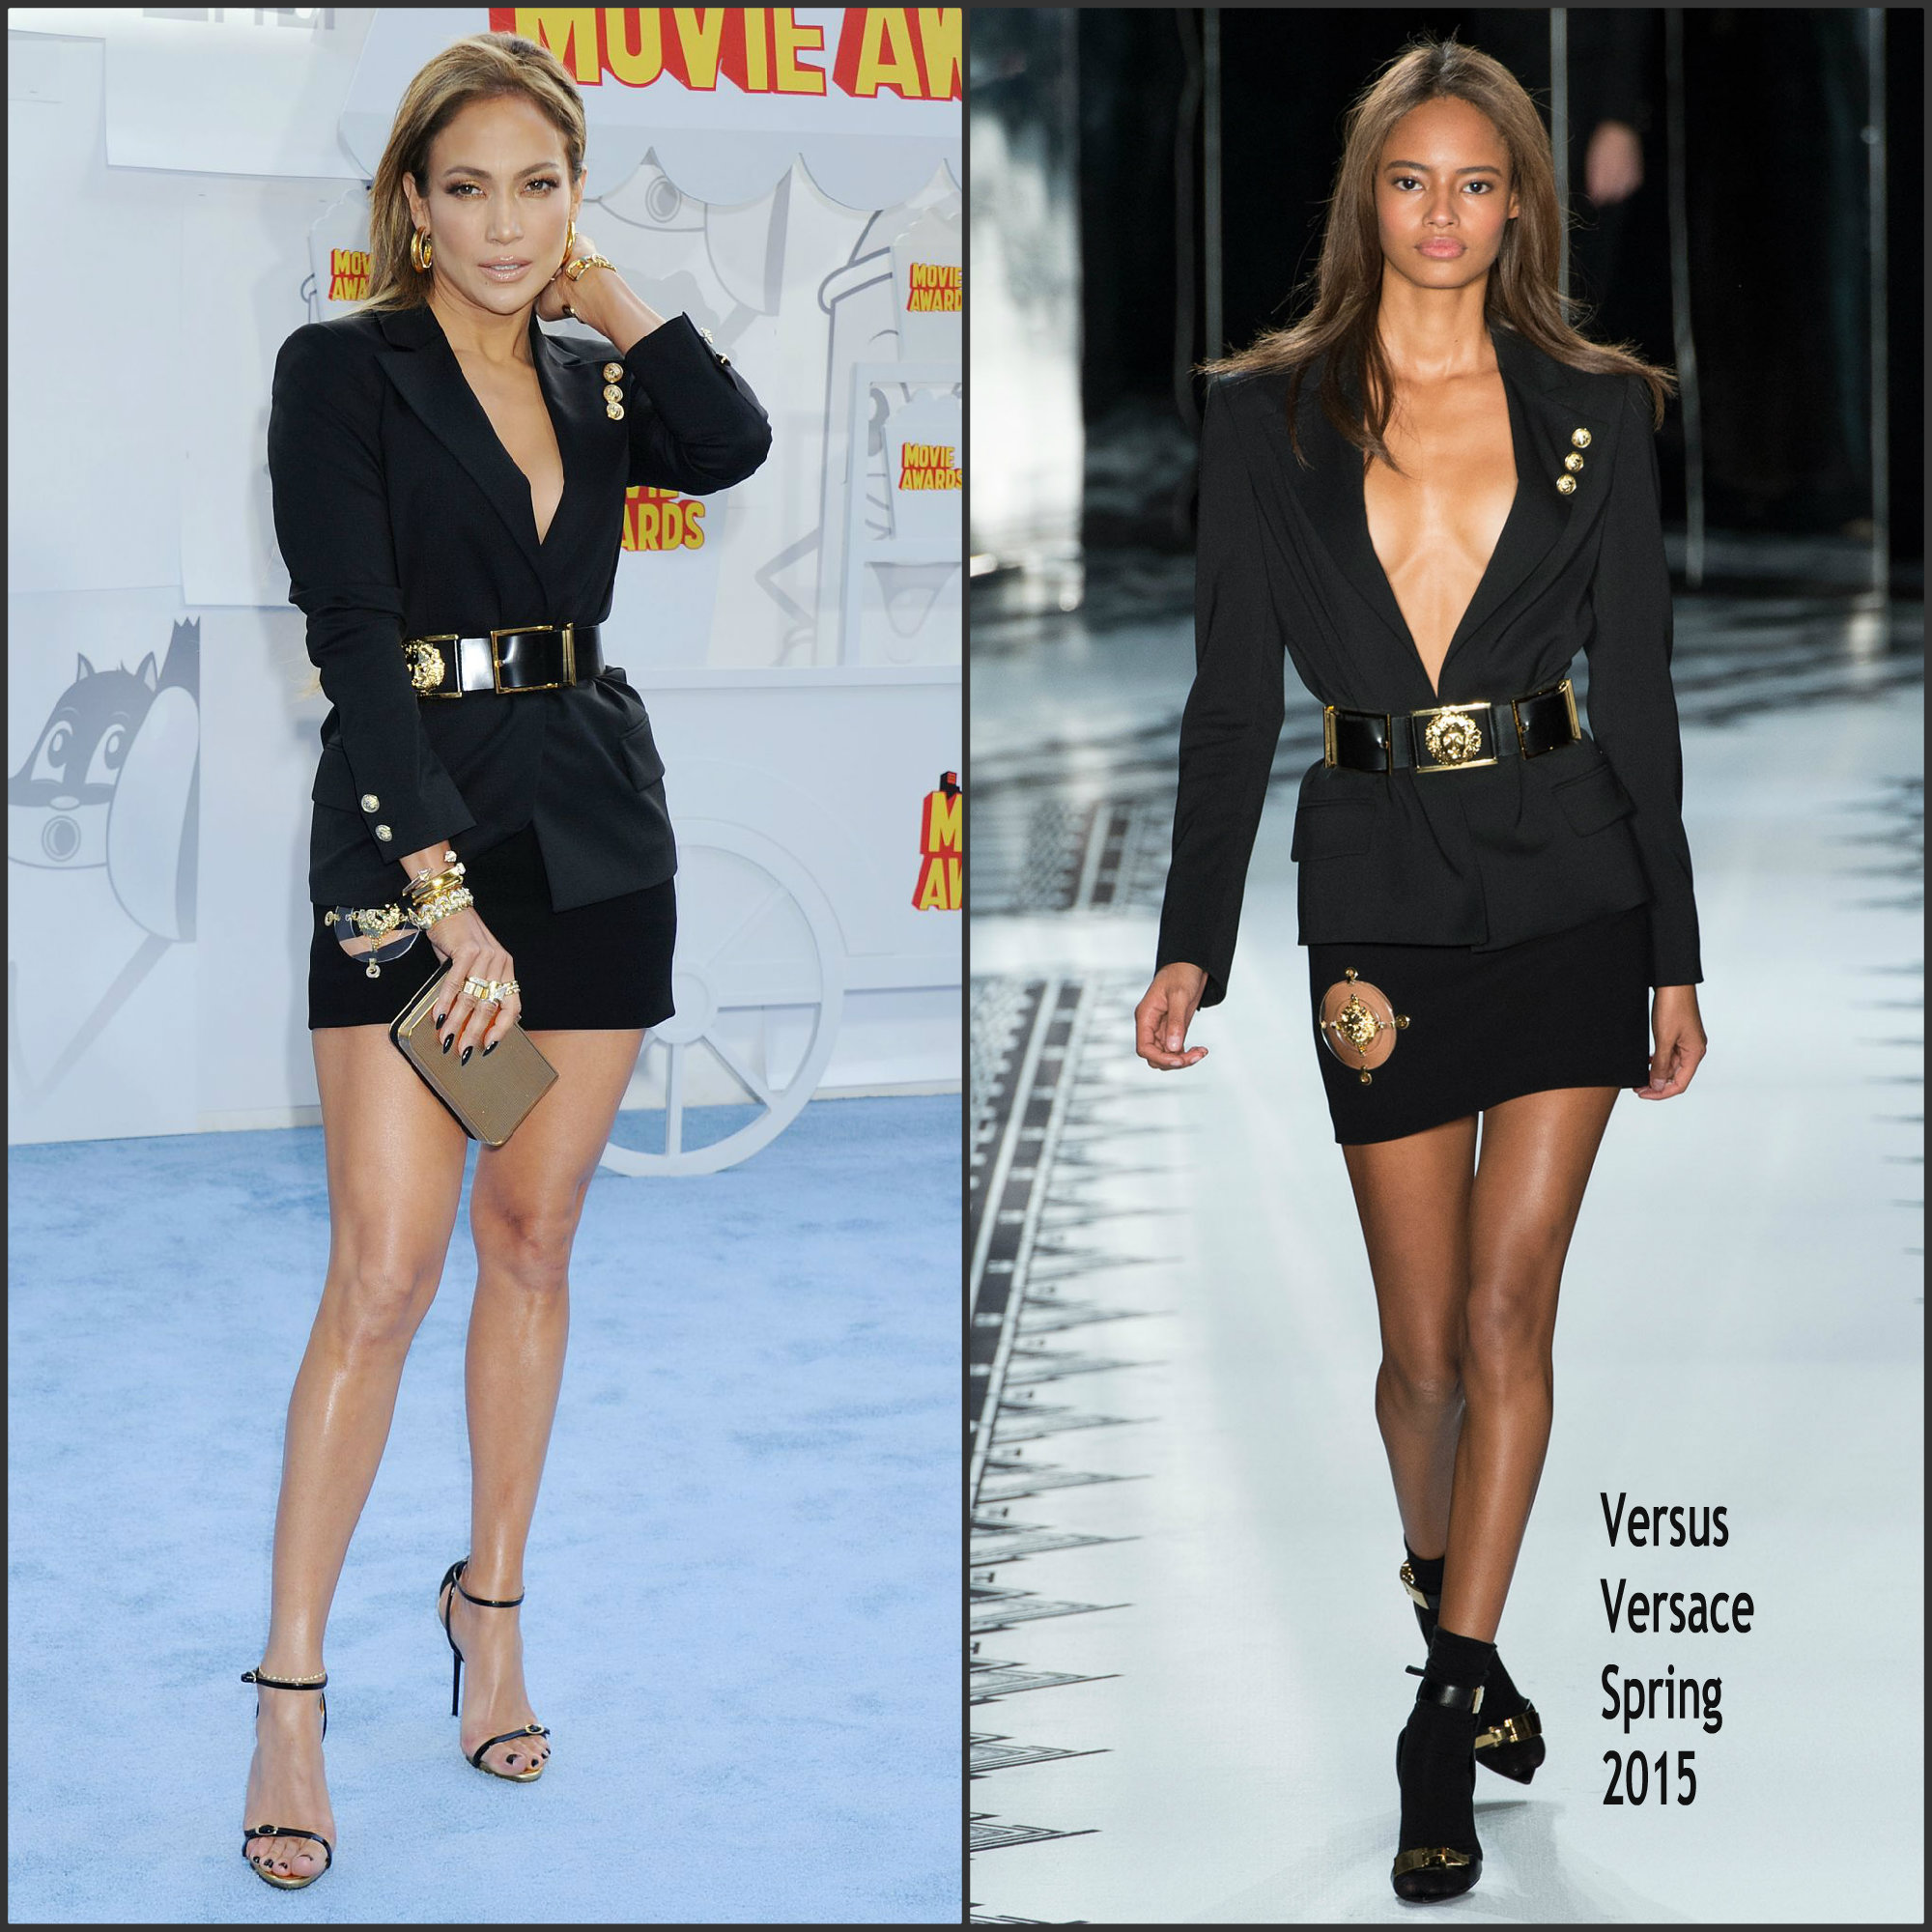 Jennifer-Lopez-in-Versus-Versace-2015-mtv-movie-awards